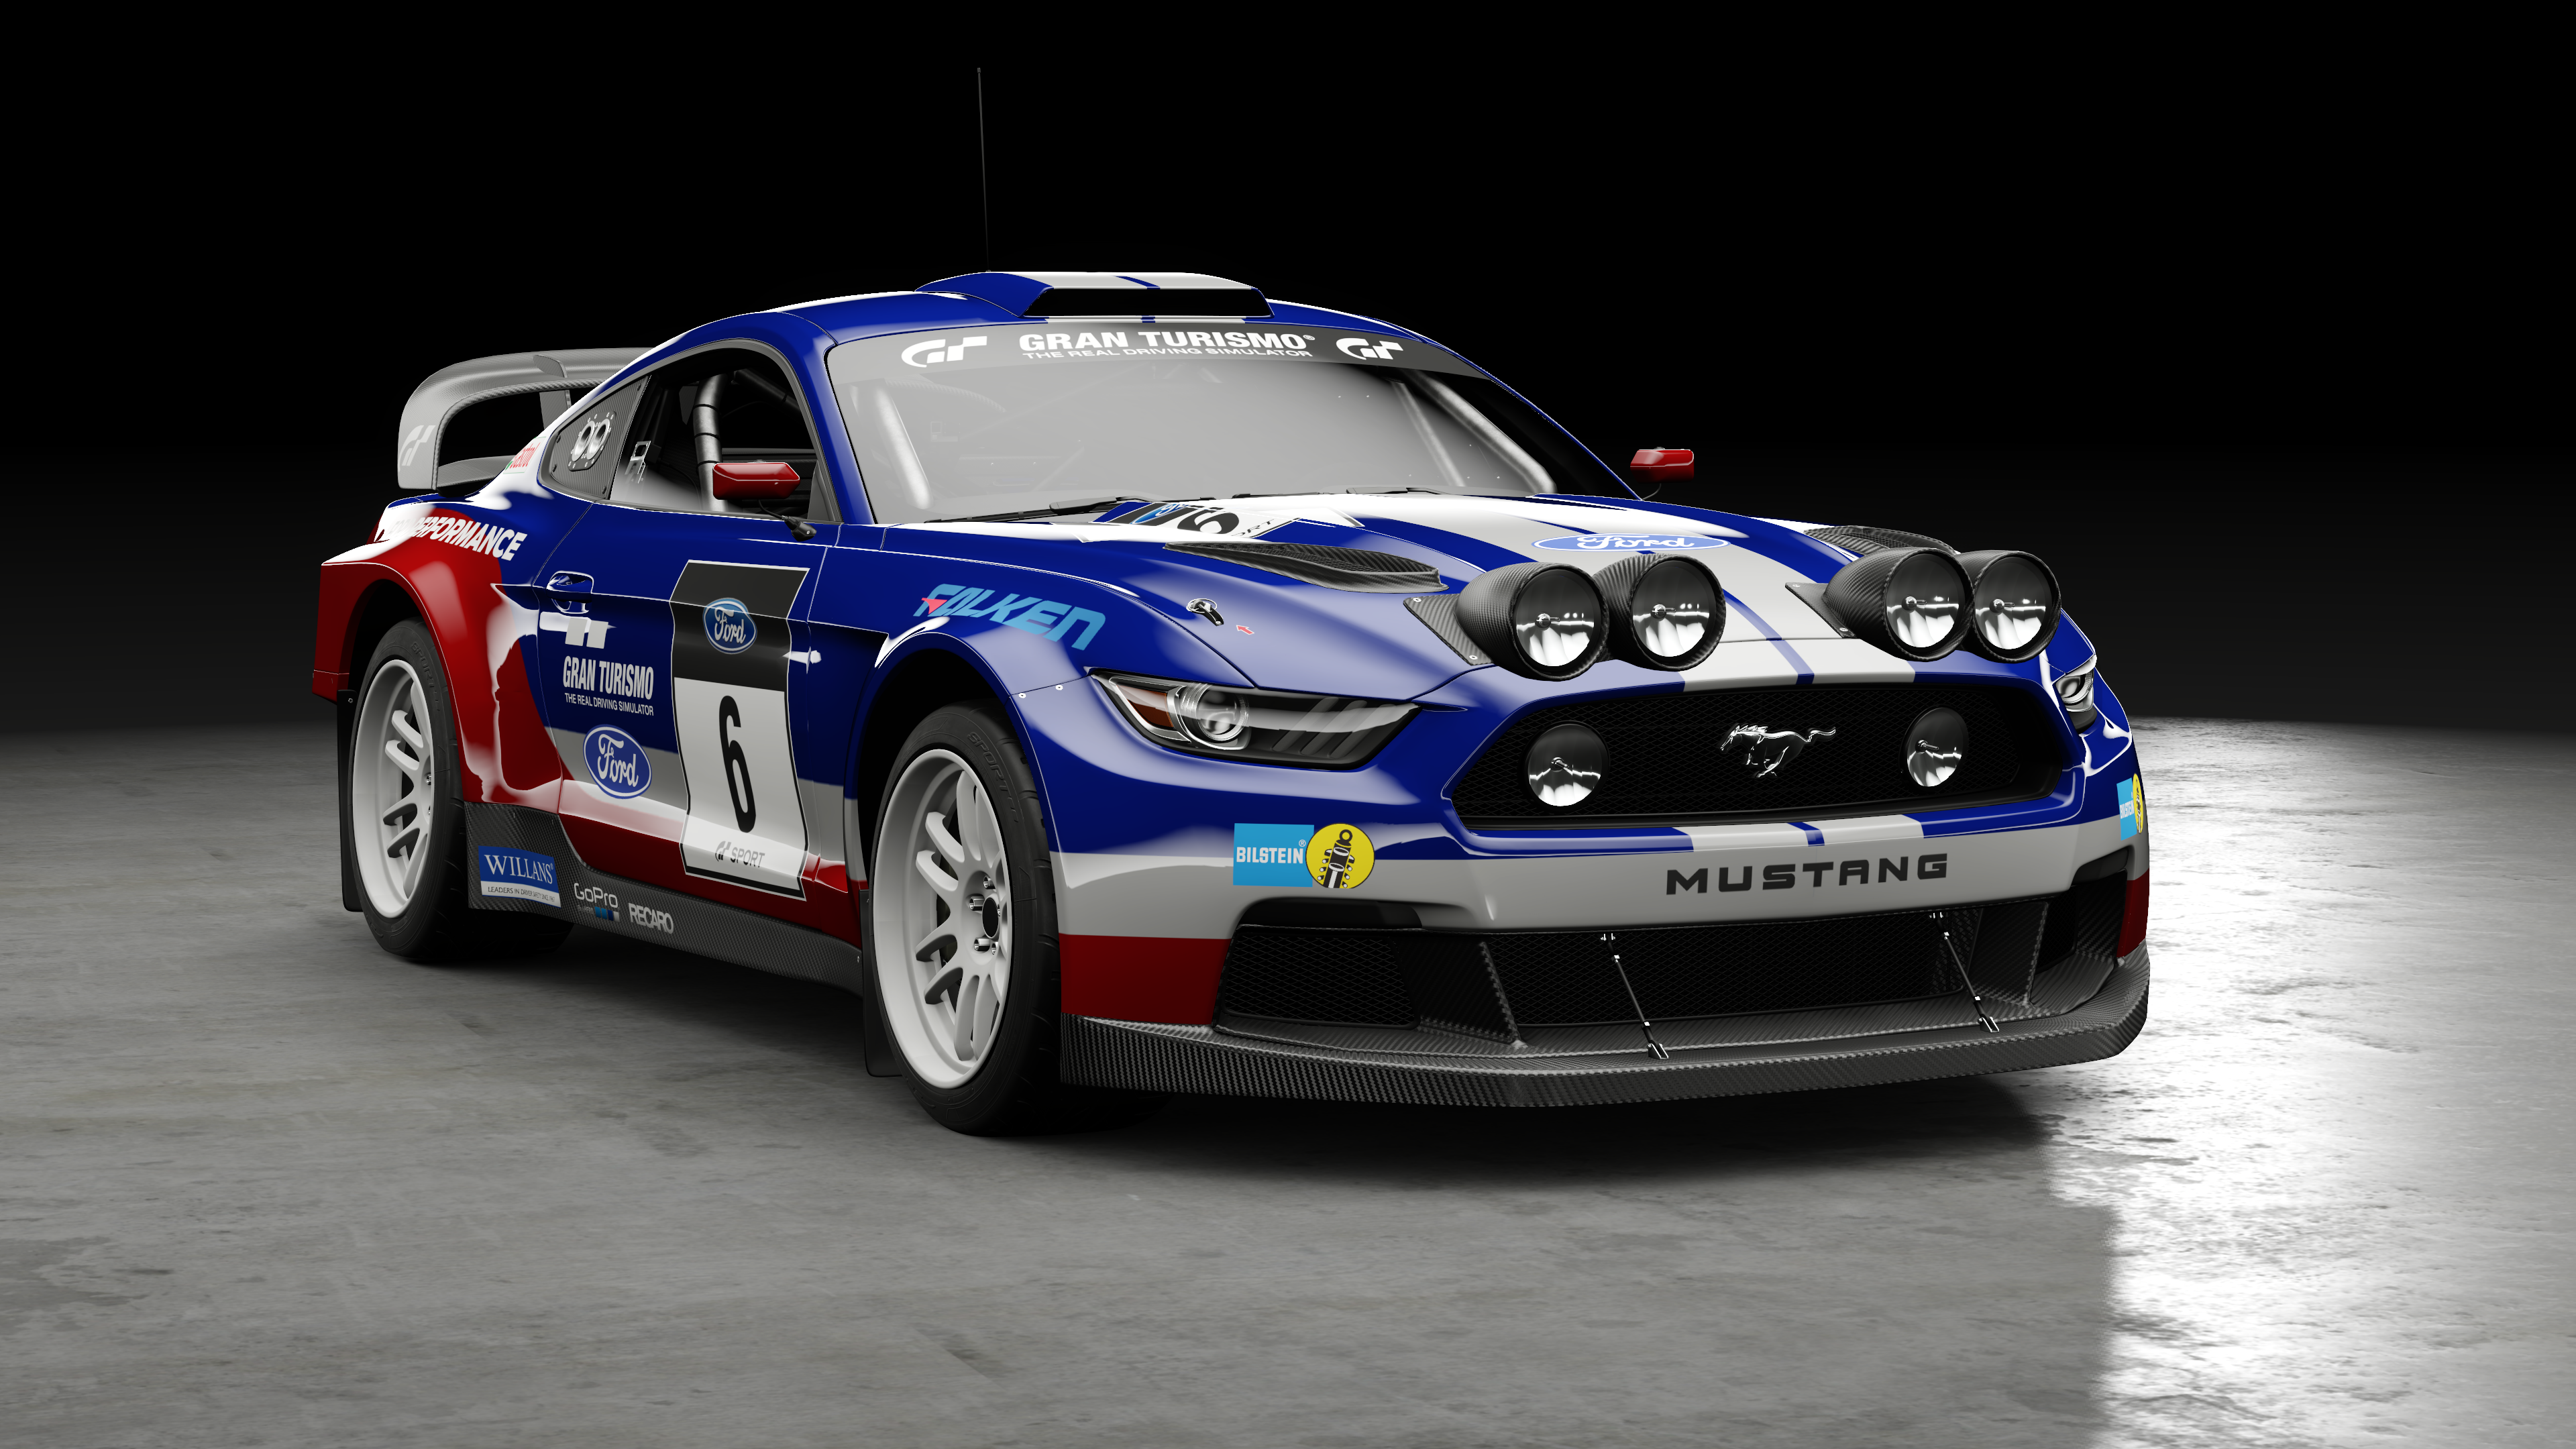 Ford Mustang Gt Group B Rally Car 4k Ultra Hd Wallpaper Background